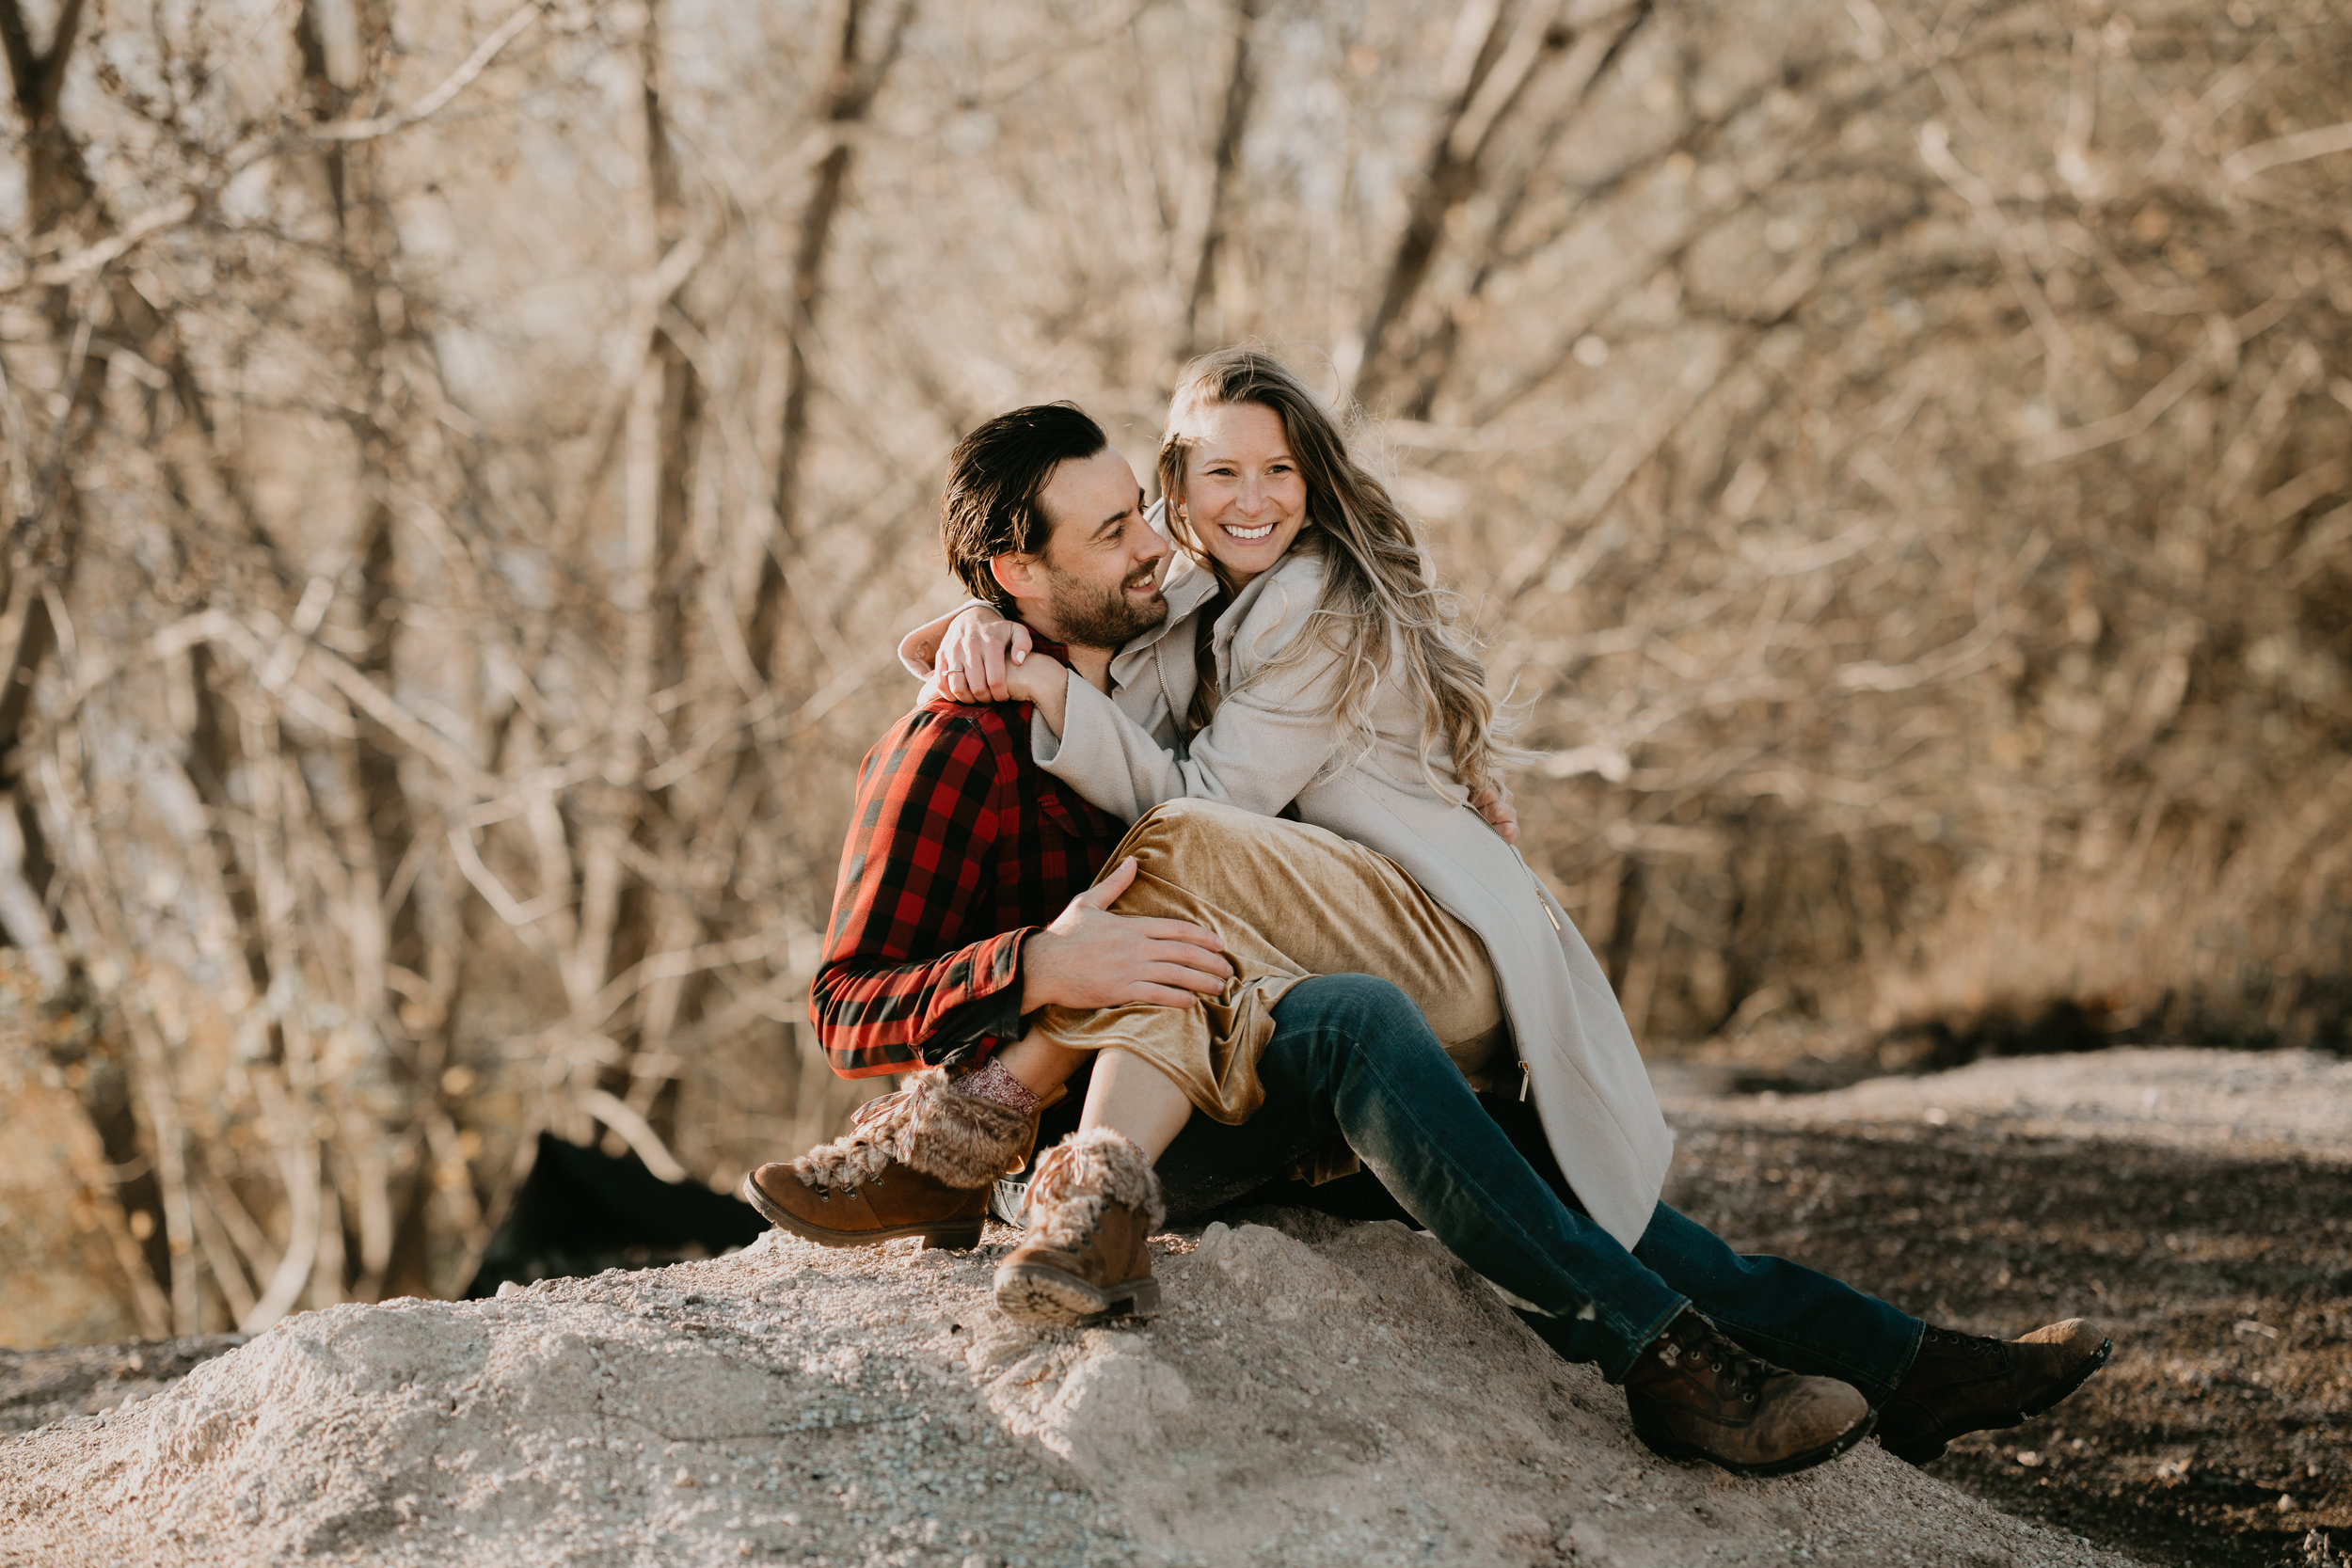 nicole-daacke-photography-white-cliffs-of-conoy-in-lancaster-pa-pennsylvania-adventure-session-adventure-elopement-photographer-engagement session-in-lancaster-pa-photographer-golden-sunset-winter-solstice-wedding-riverside-elopement-4951.jpg